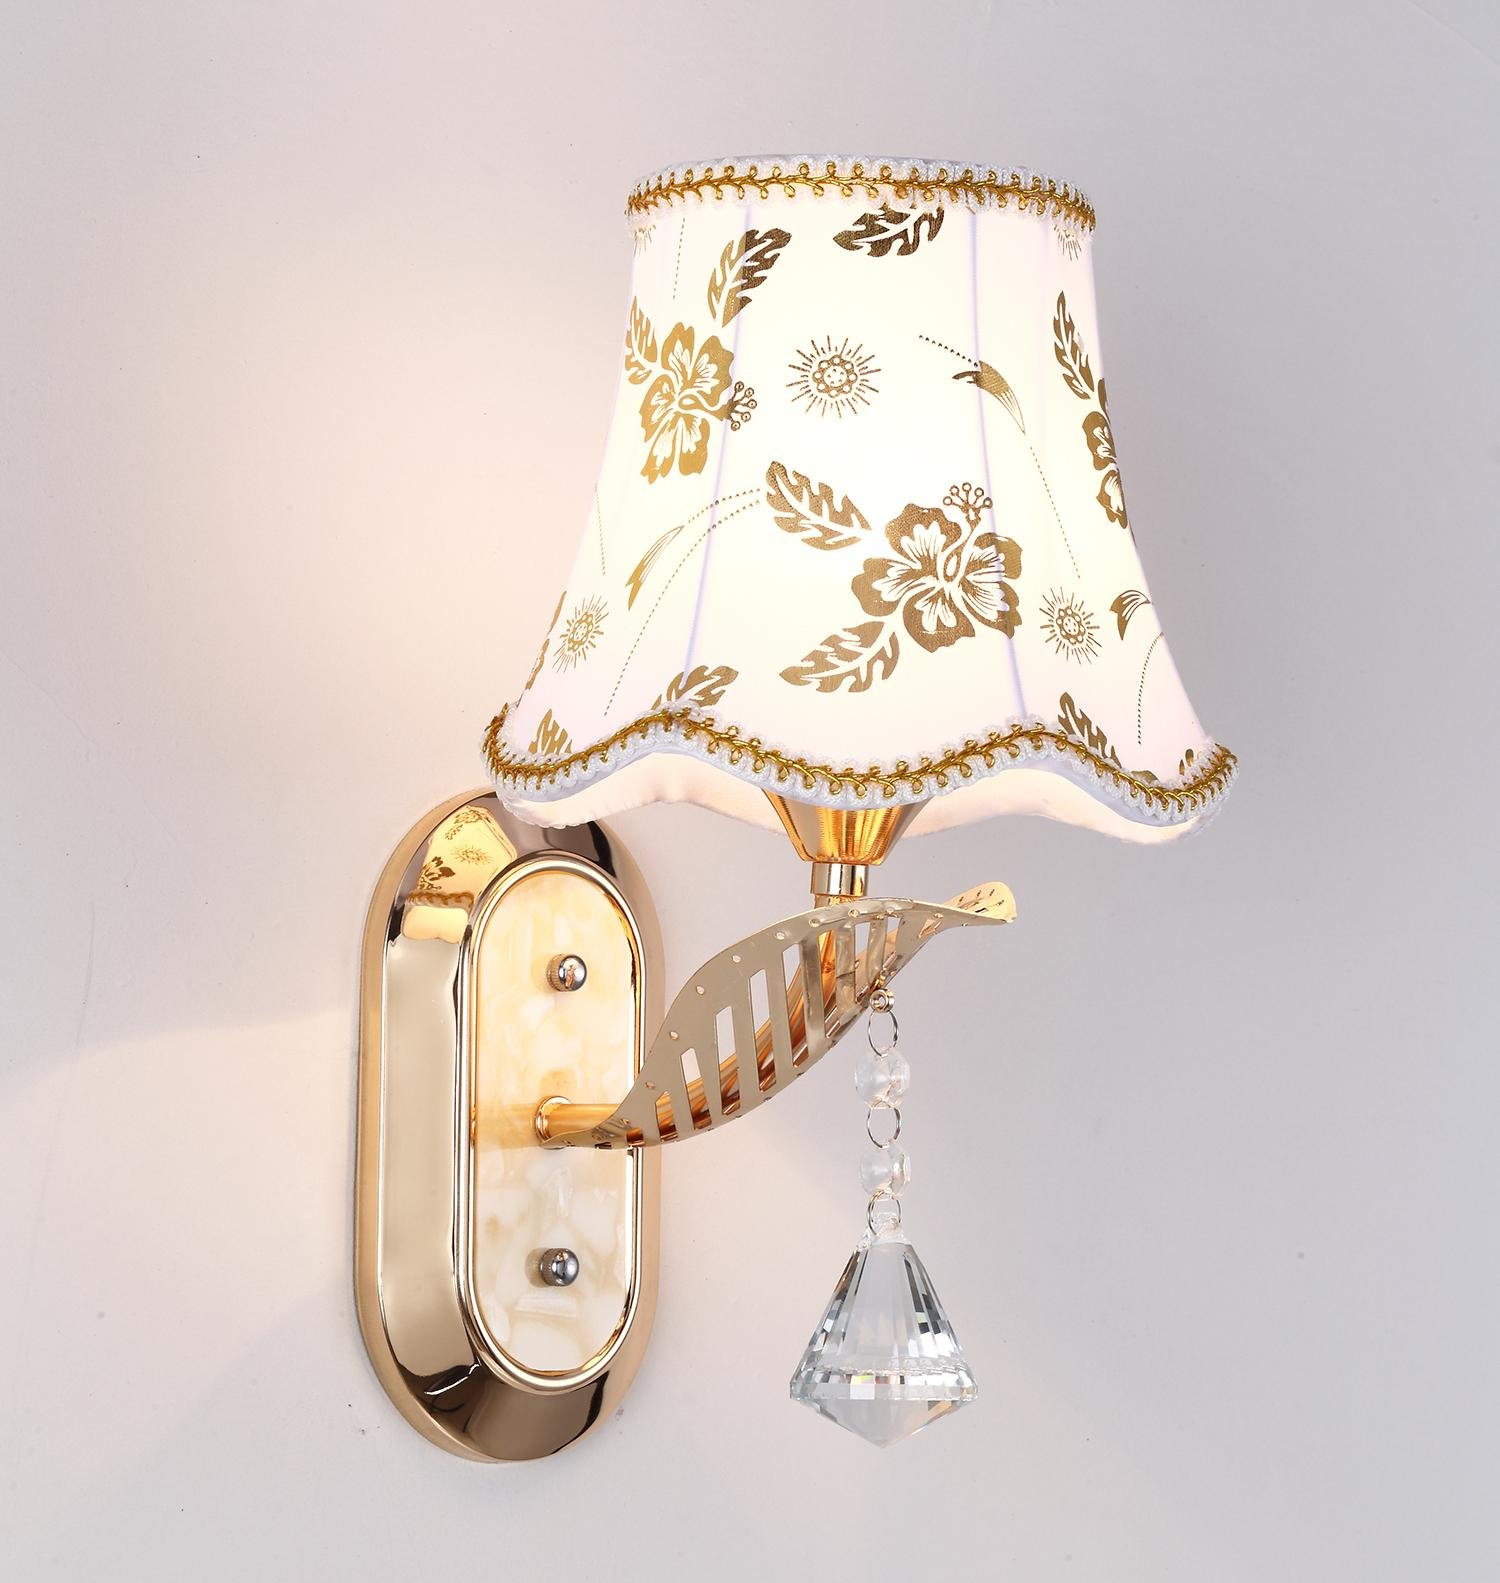 Ganeed One-Light Vintage Industrial Wall Sconces Light,Led Wall Light Lamp Fixtures with Cloth Lampshade for Living Room Bedrooms Corridor Bedside Corridor Home Lighting Decoration